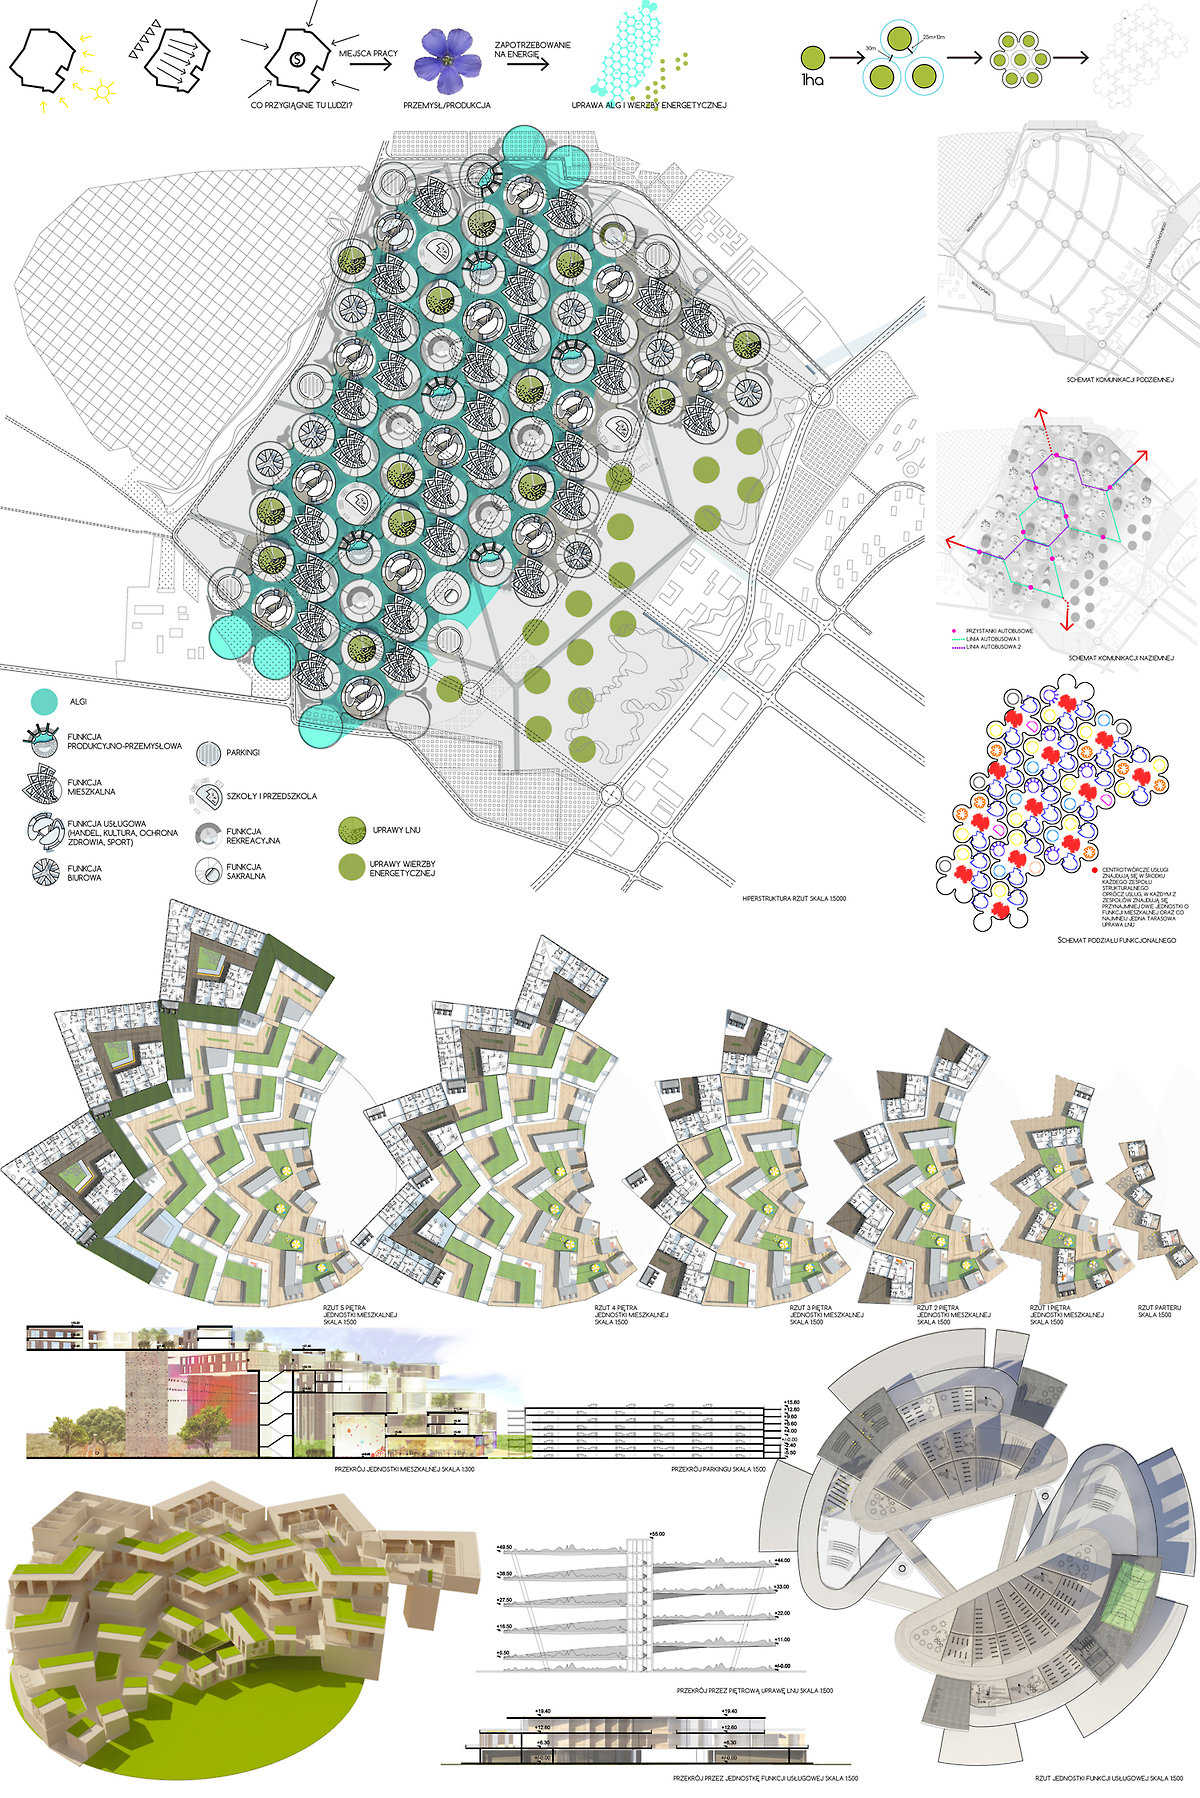 Maja Wrońska. Green production – a hiperstructure for 15,000 inhabitants in the area of Warsaw Ironworks